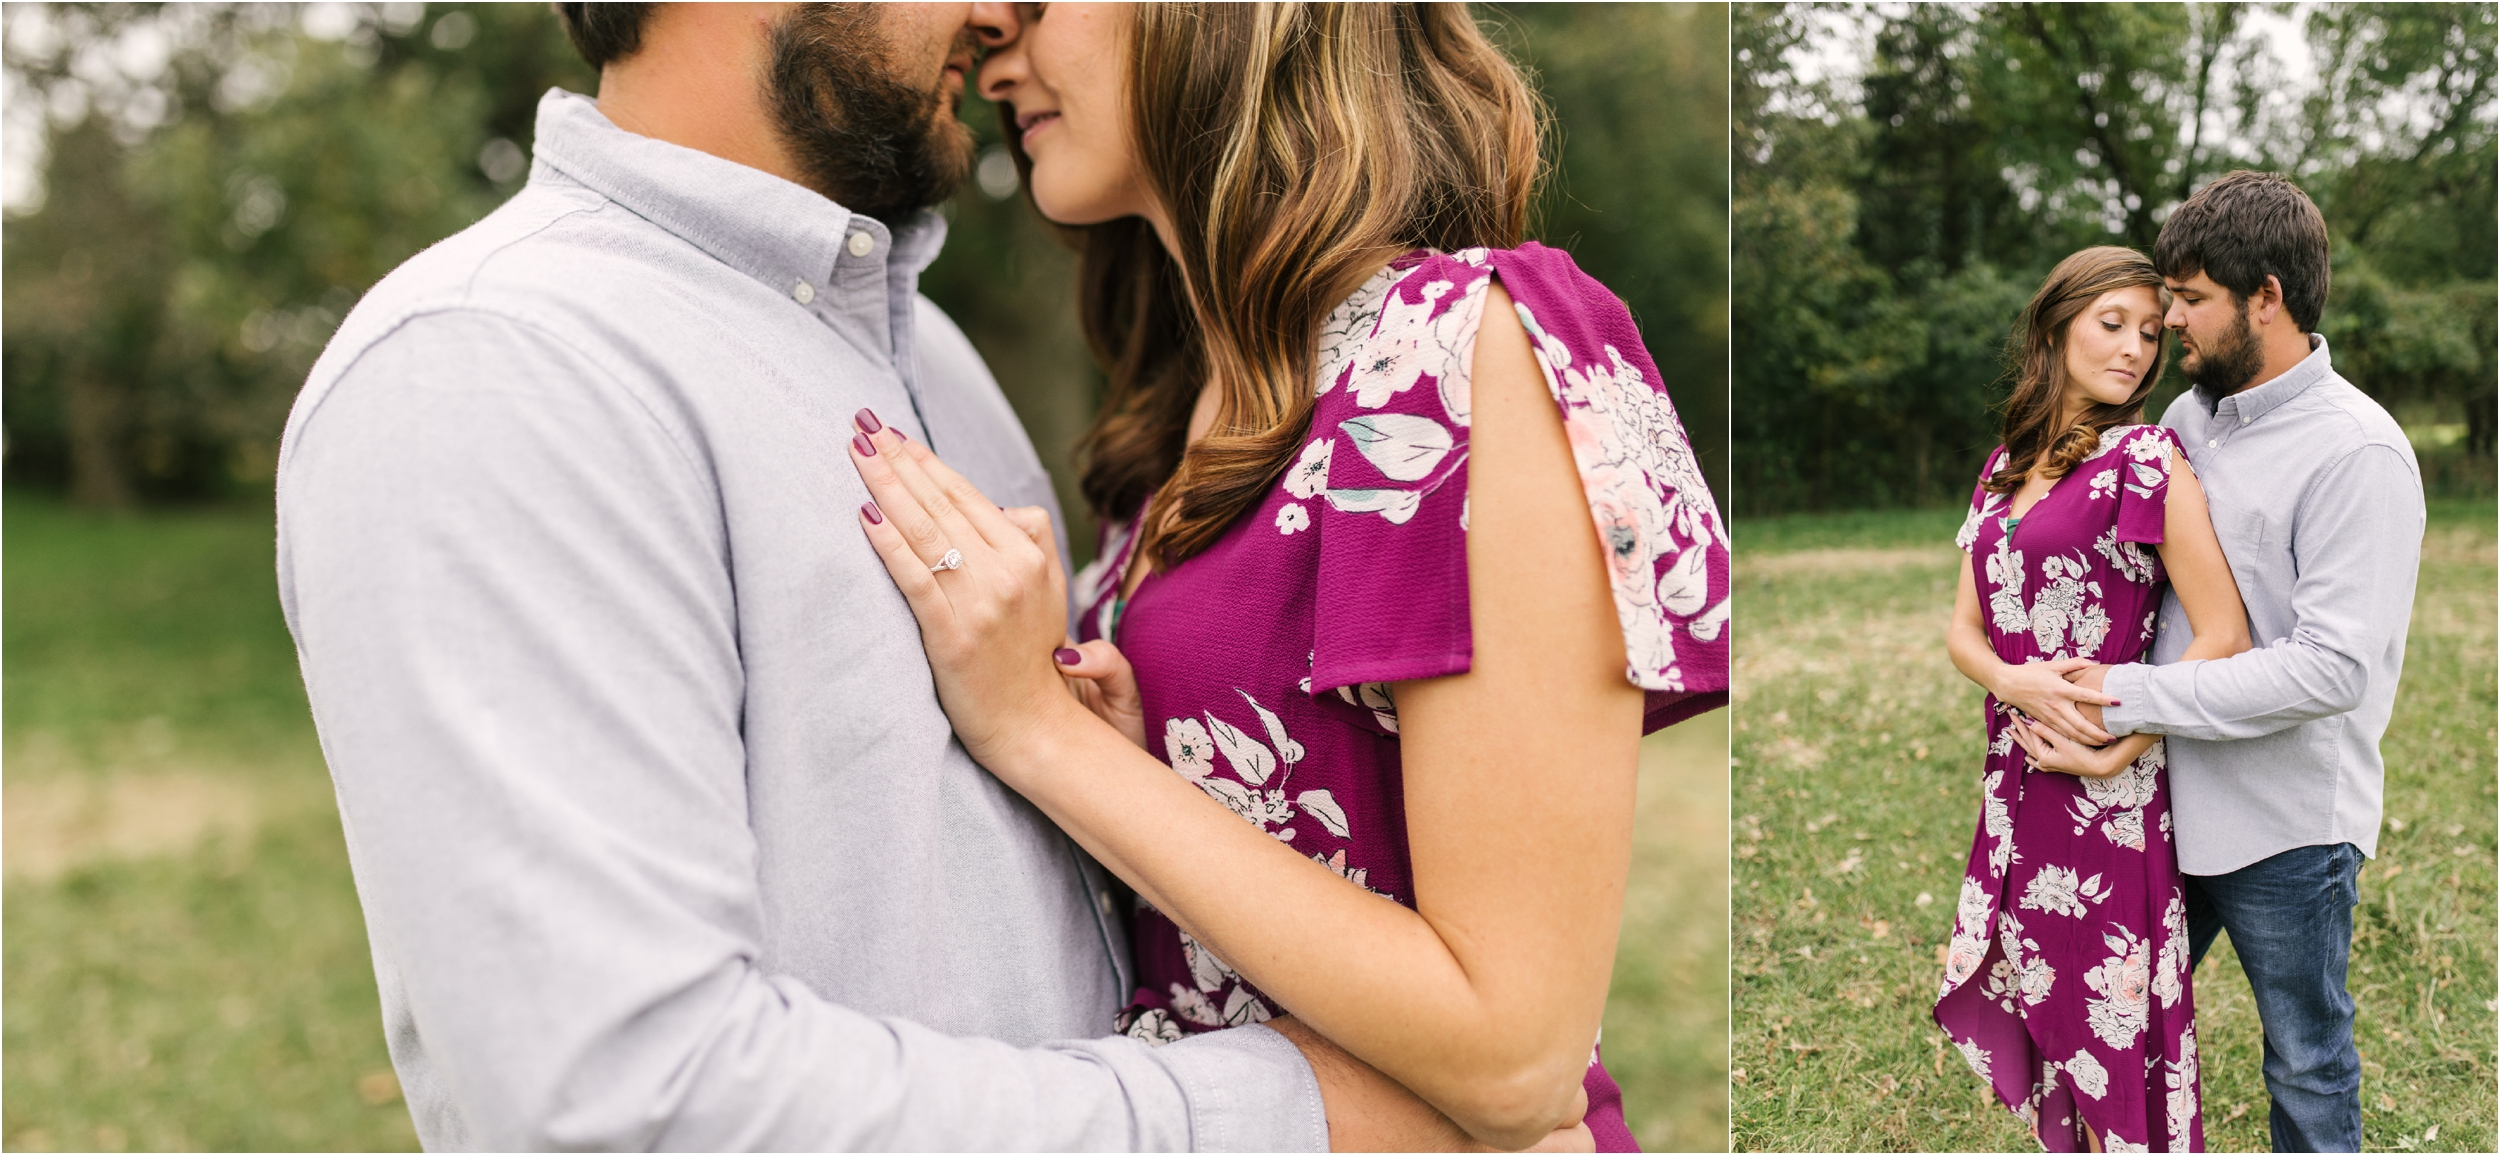 Countryside Engagement Photos_ Minnesota Wedding Photographer_Stephanie Lynn Photography_0050.jpg